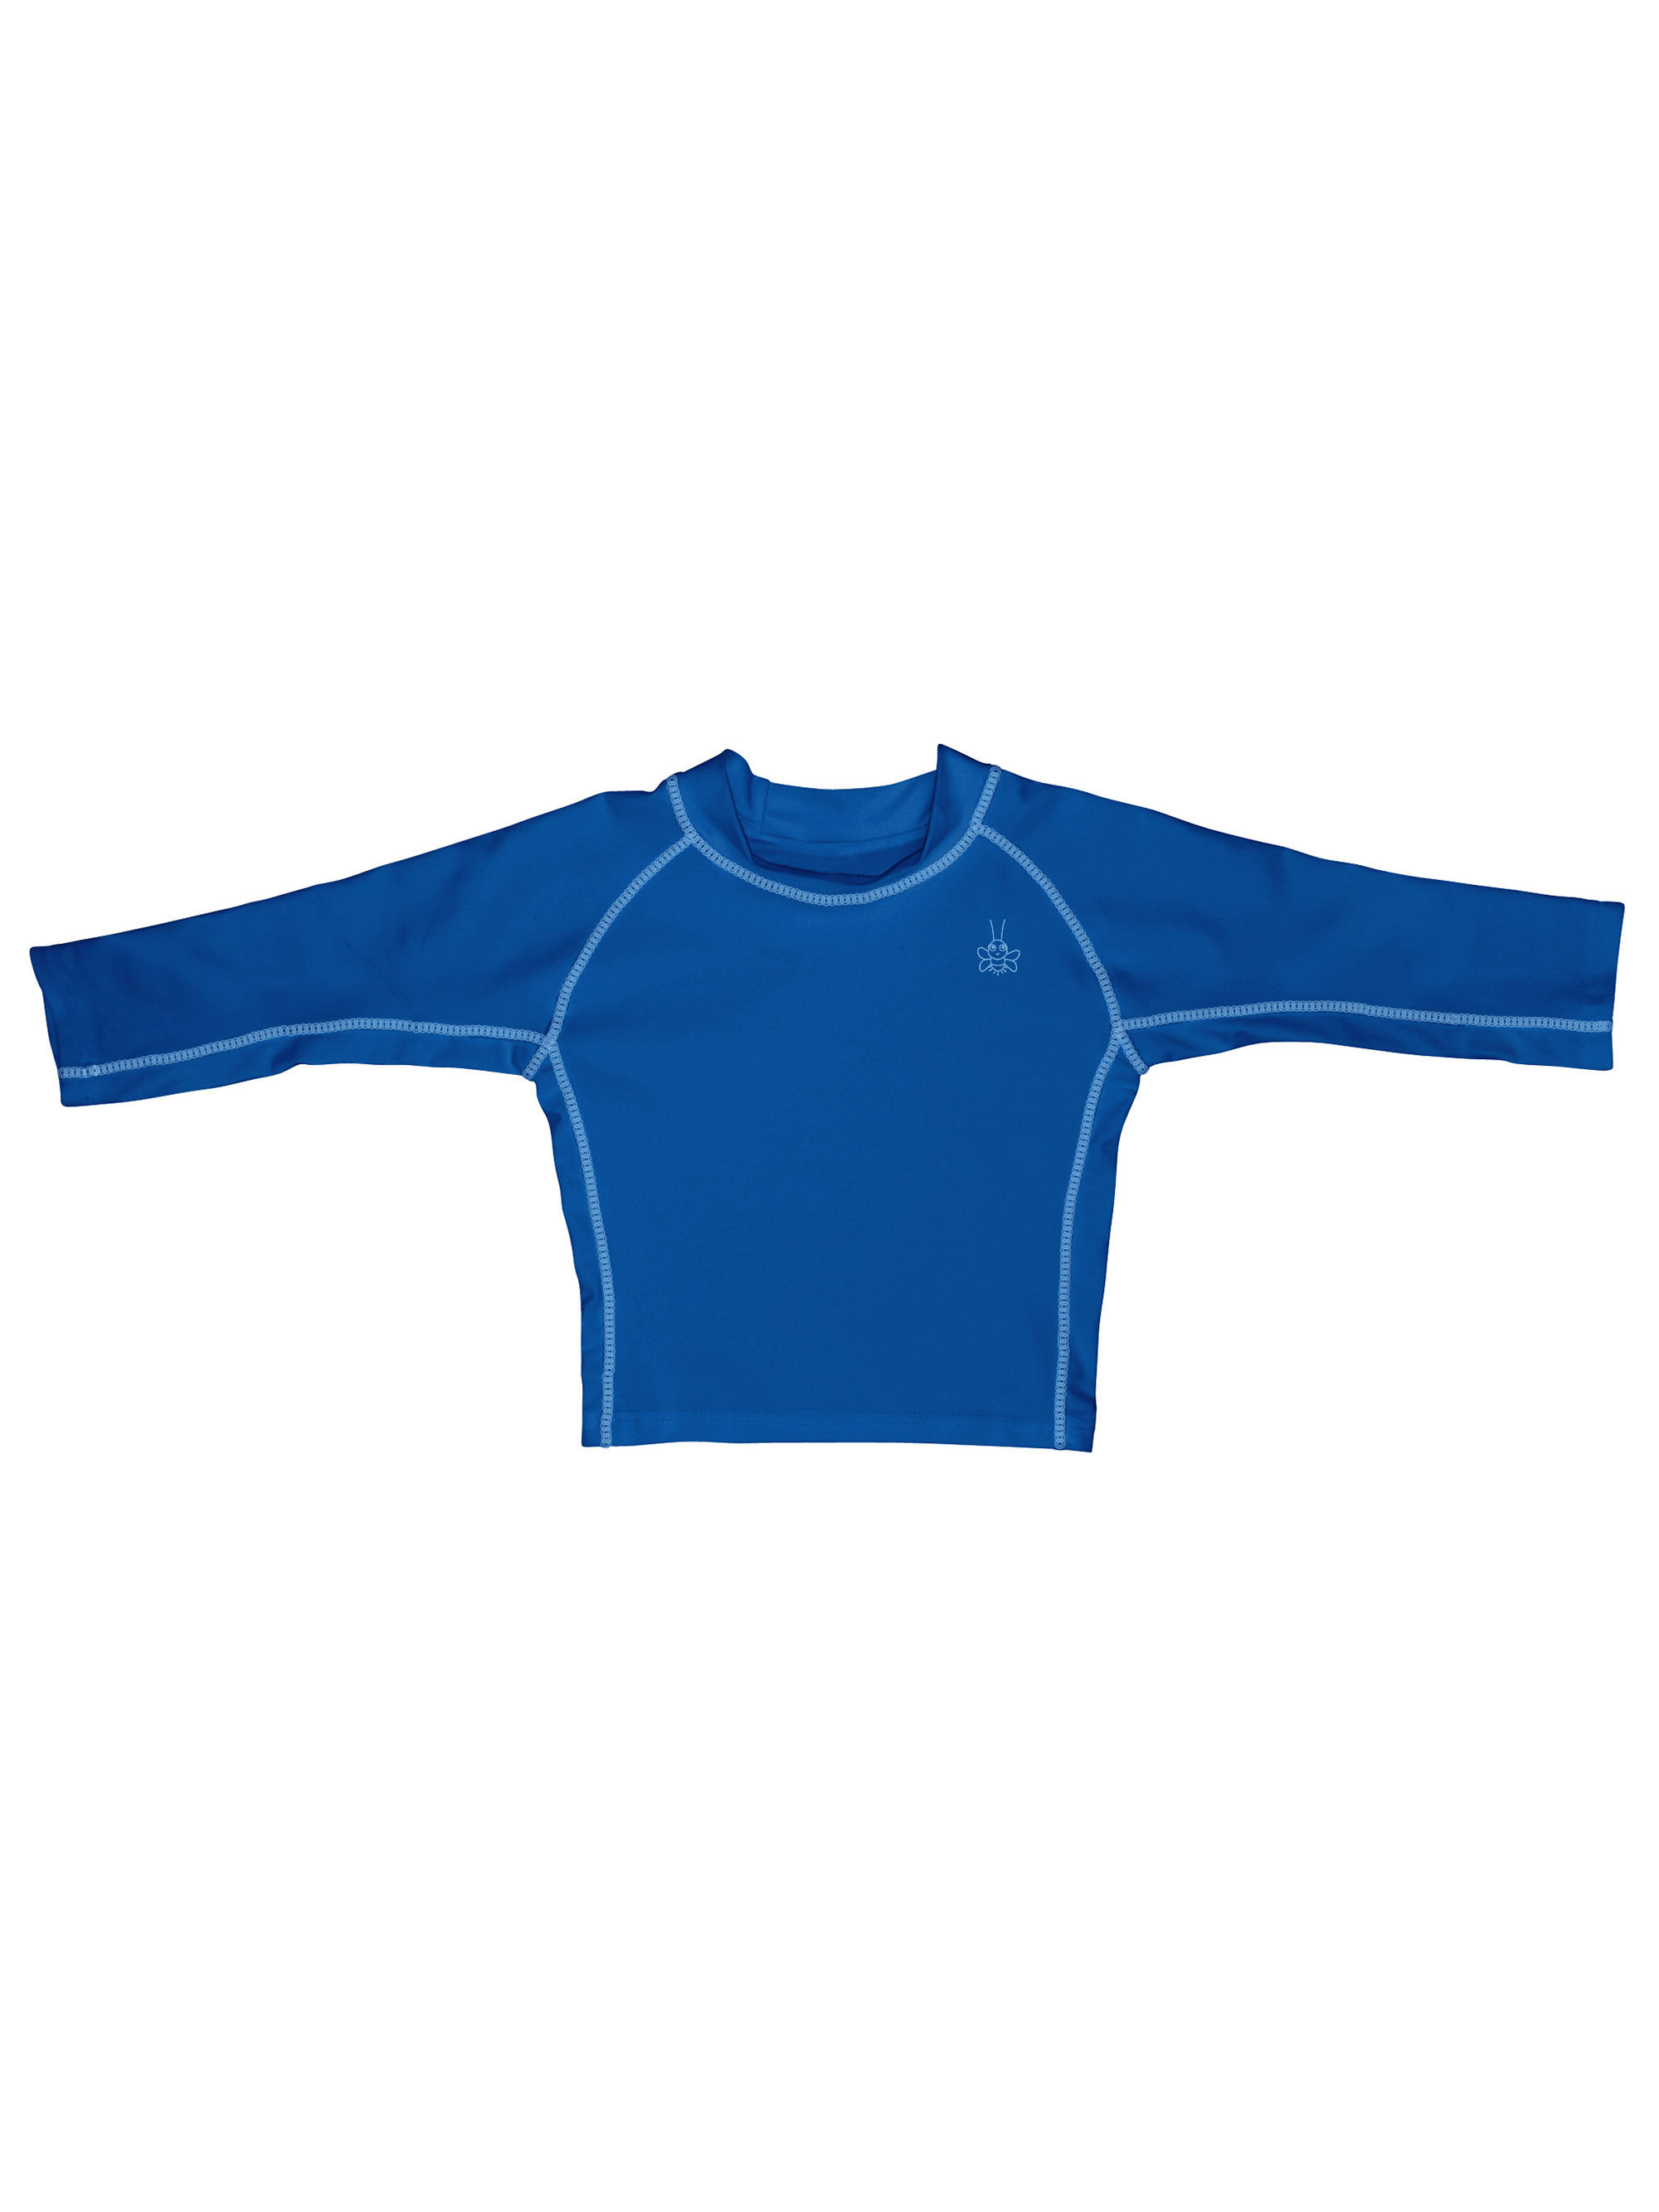 Iplay Long Sleeve Rashguard Top, Swim Shirt or Sun Shirt for Best Sun Protection Rash Guard UPF 50+ Solid Color T-Shirt for Baby Boys Blue - For Babies and Infants 12 Months